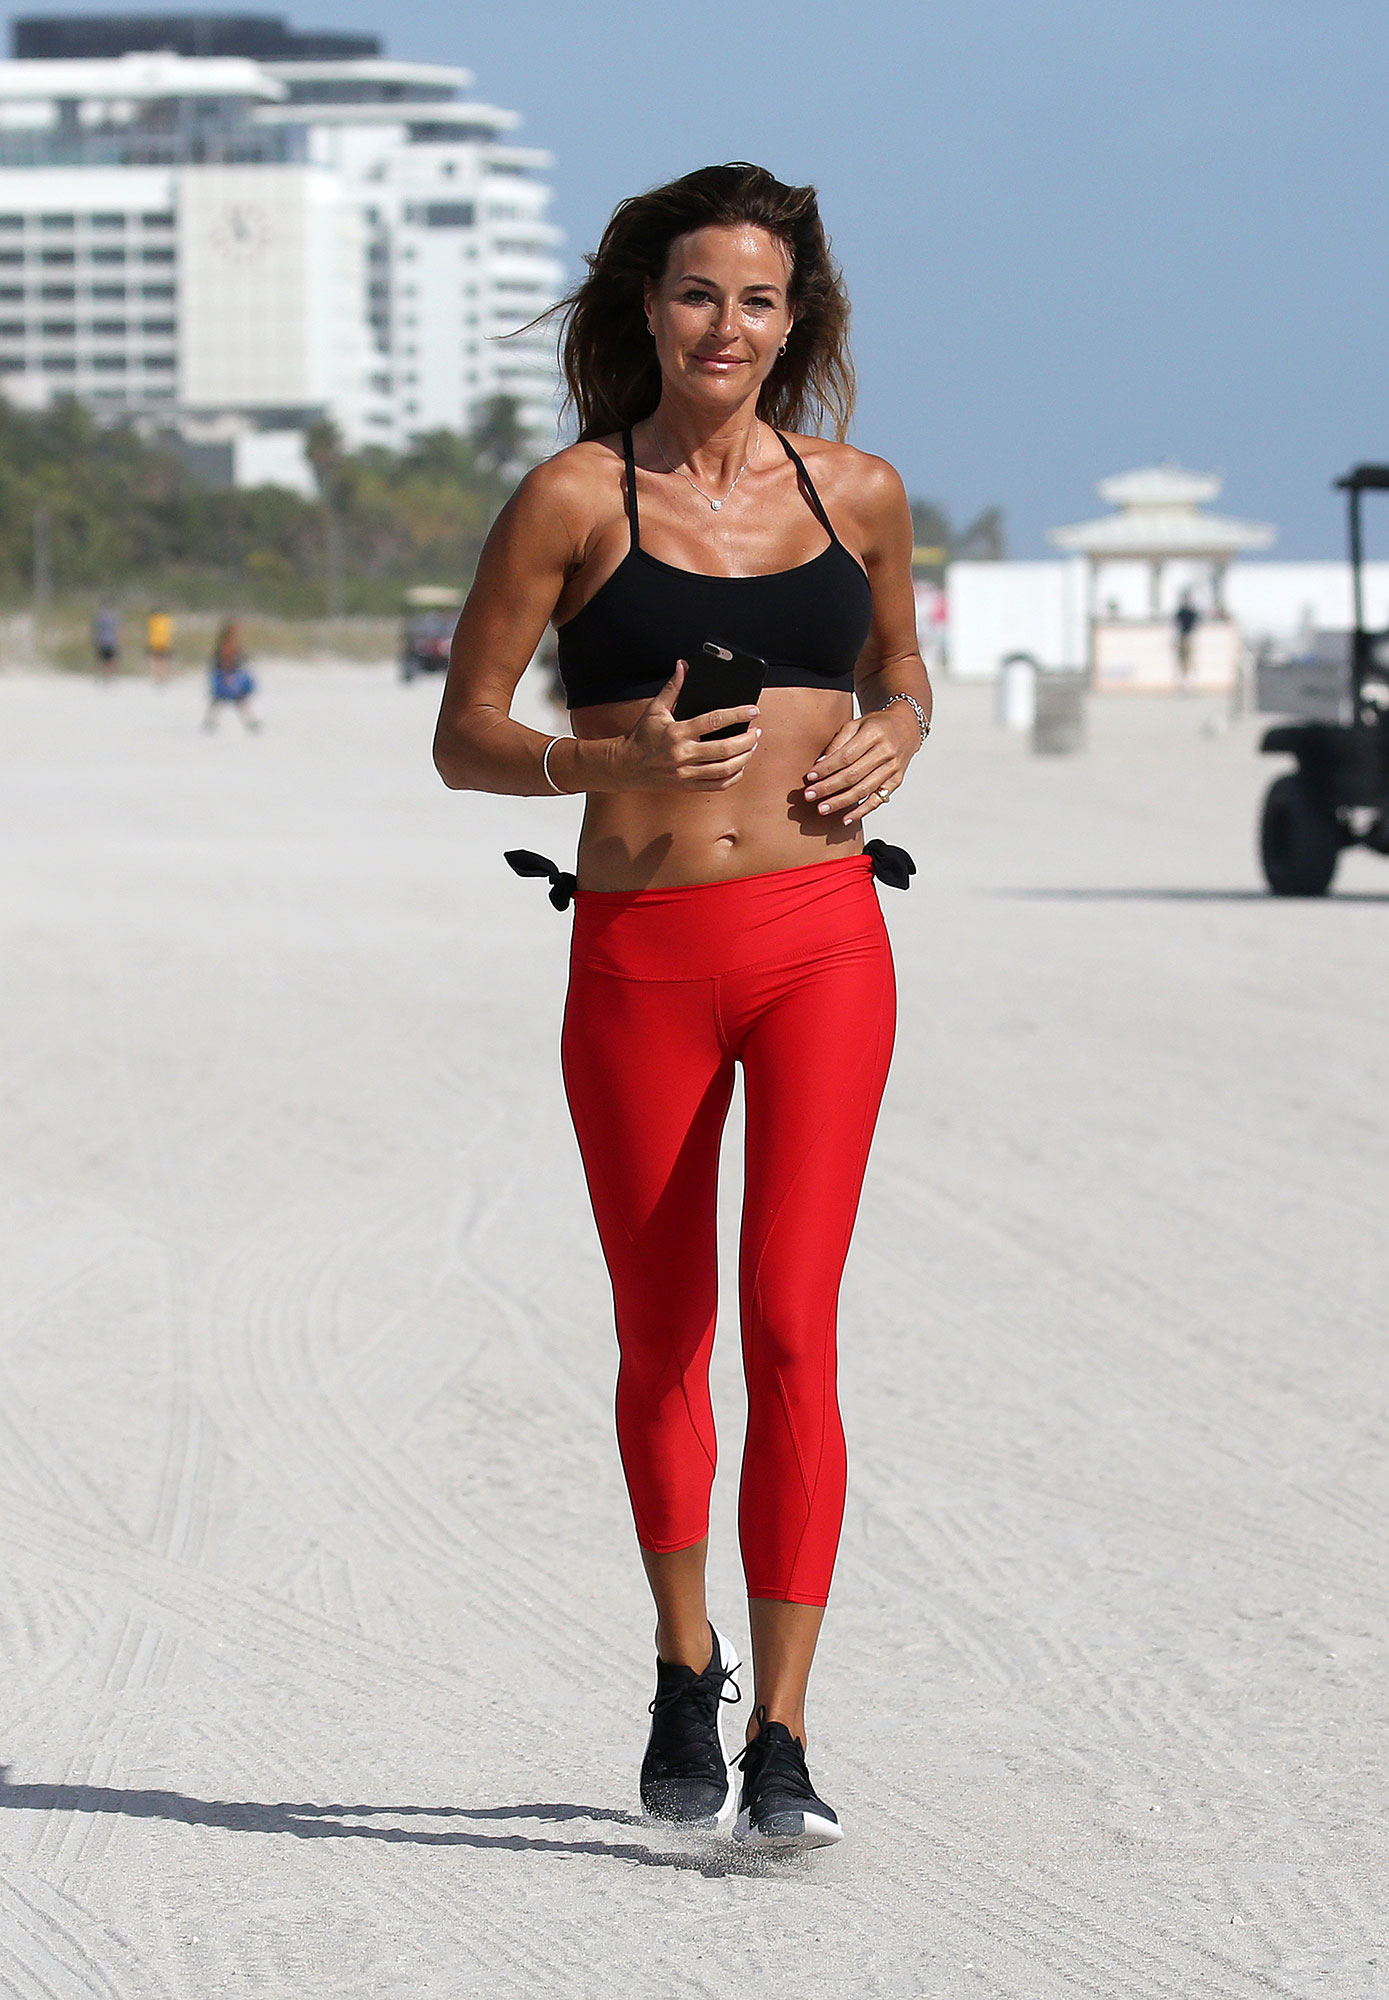 Kelly Bensimon Celebrity Joggers - Have red pants, will sweat. The tanned Real Housewives of New York City star put in a beachside workout in Miami on January 3, 2019.